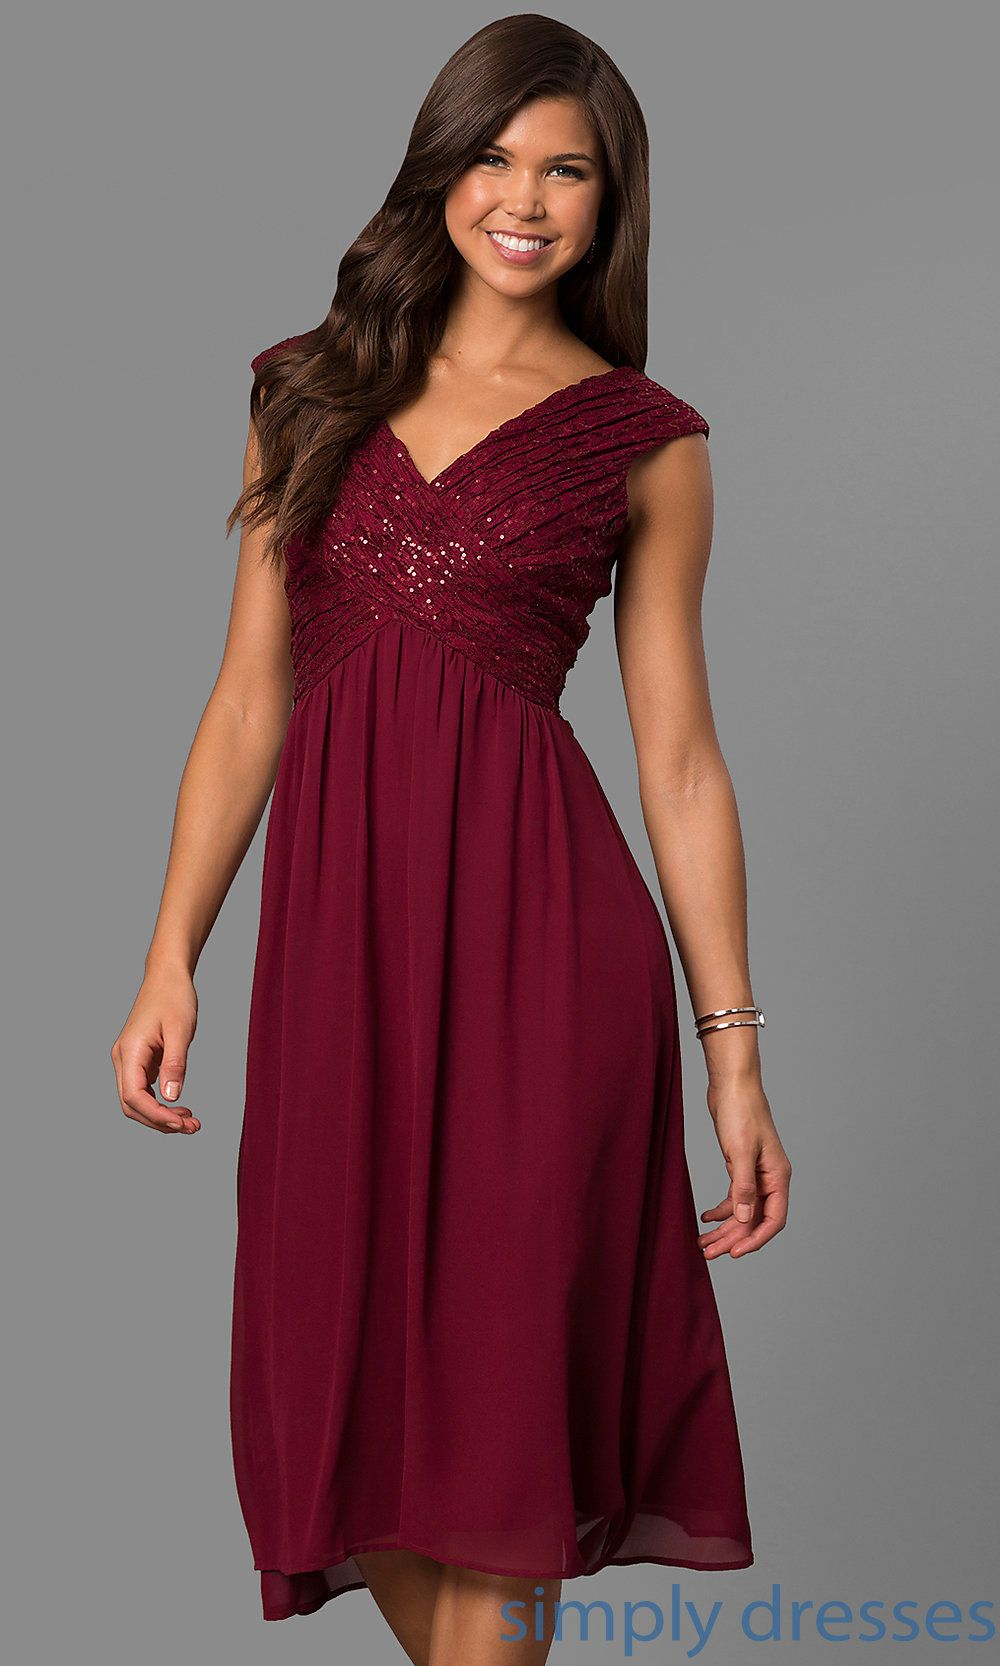 Shop short bridesmaid dresses at Simply Dresses. Cheap knee-length  semi-formal party dresses under  100 with v-necklines and sequin-lace  bodices. 2fe381ebeedf